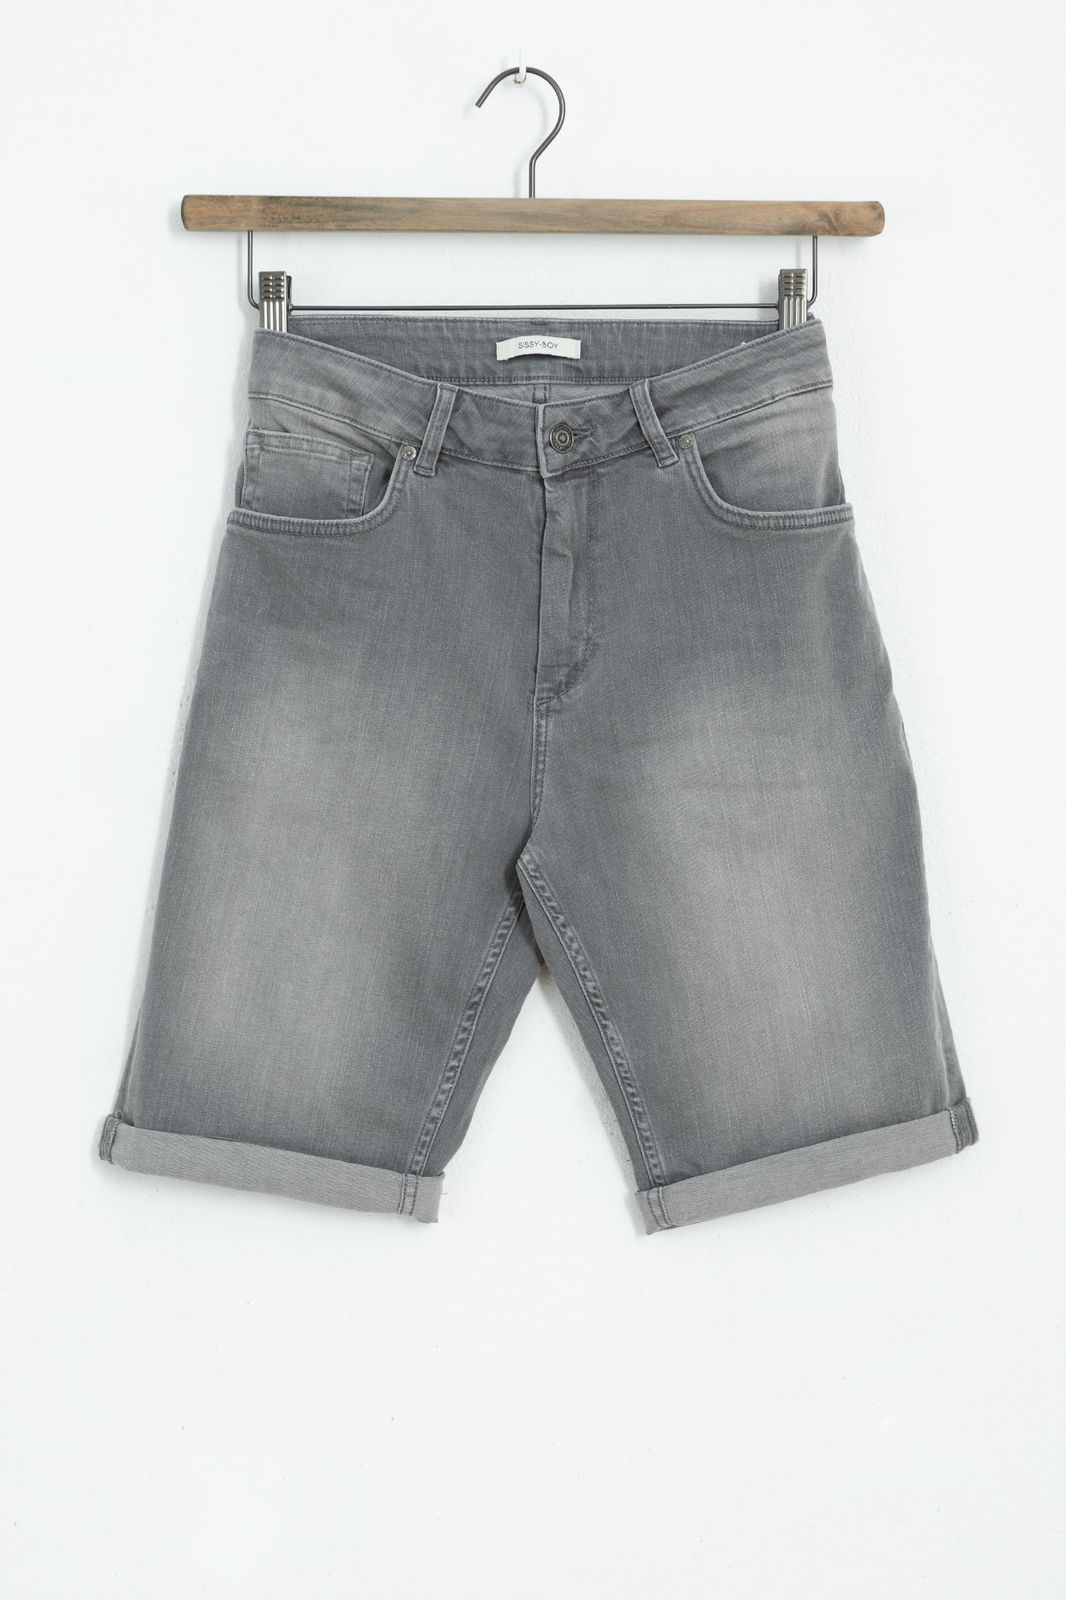 Grijs denim short